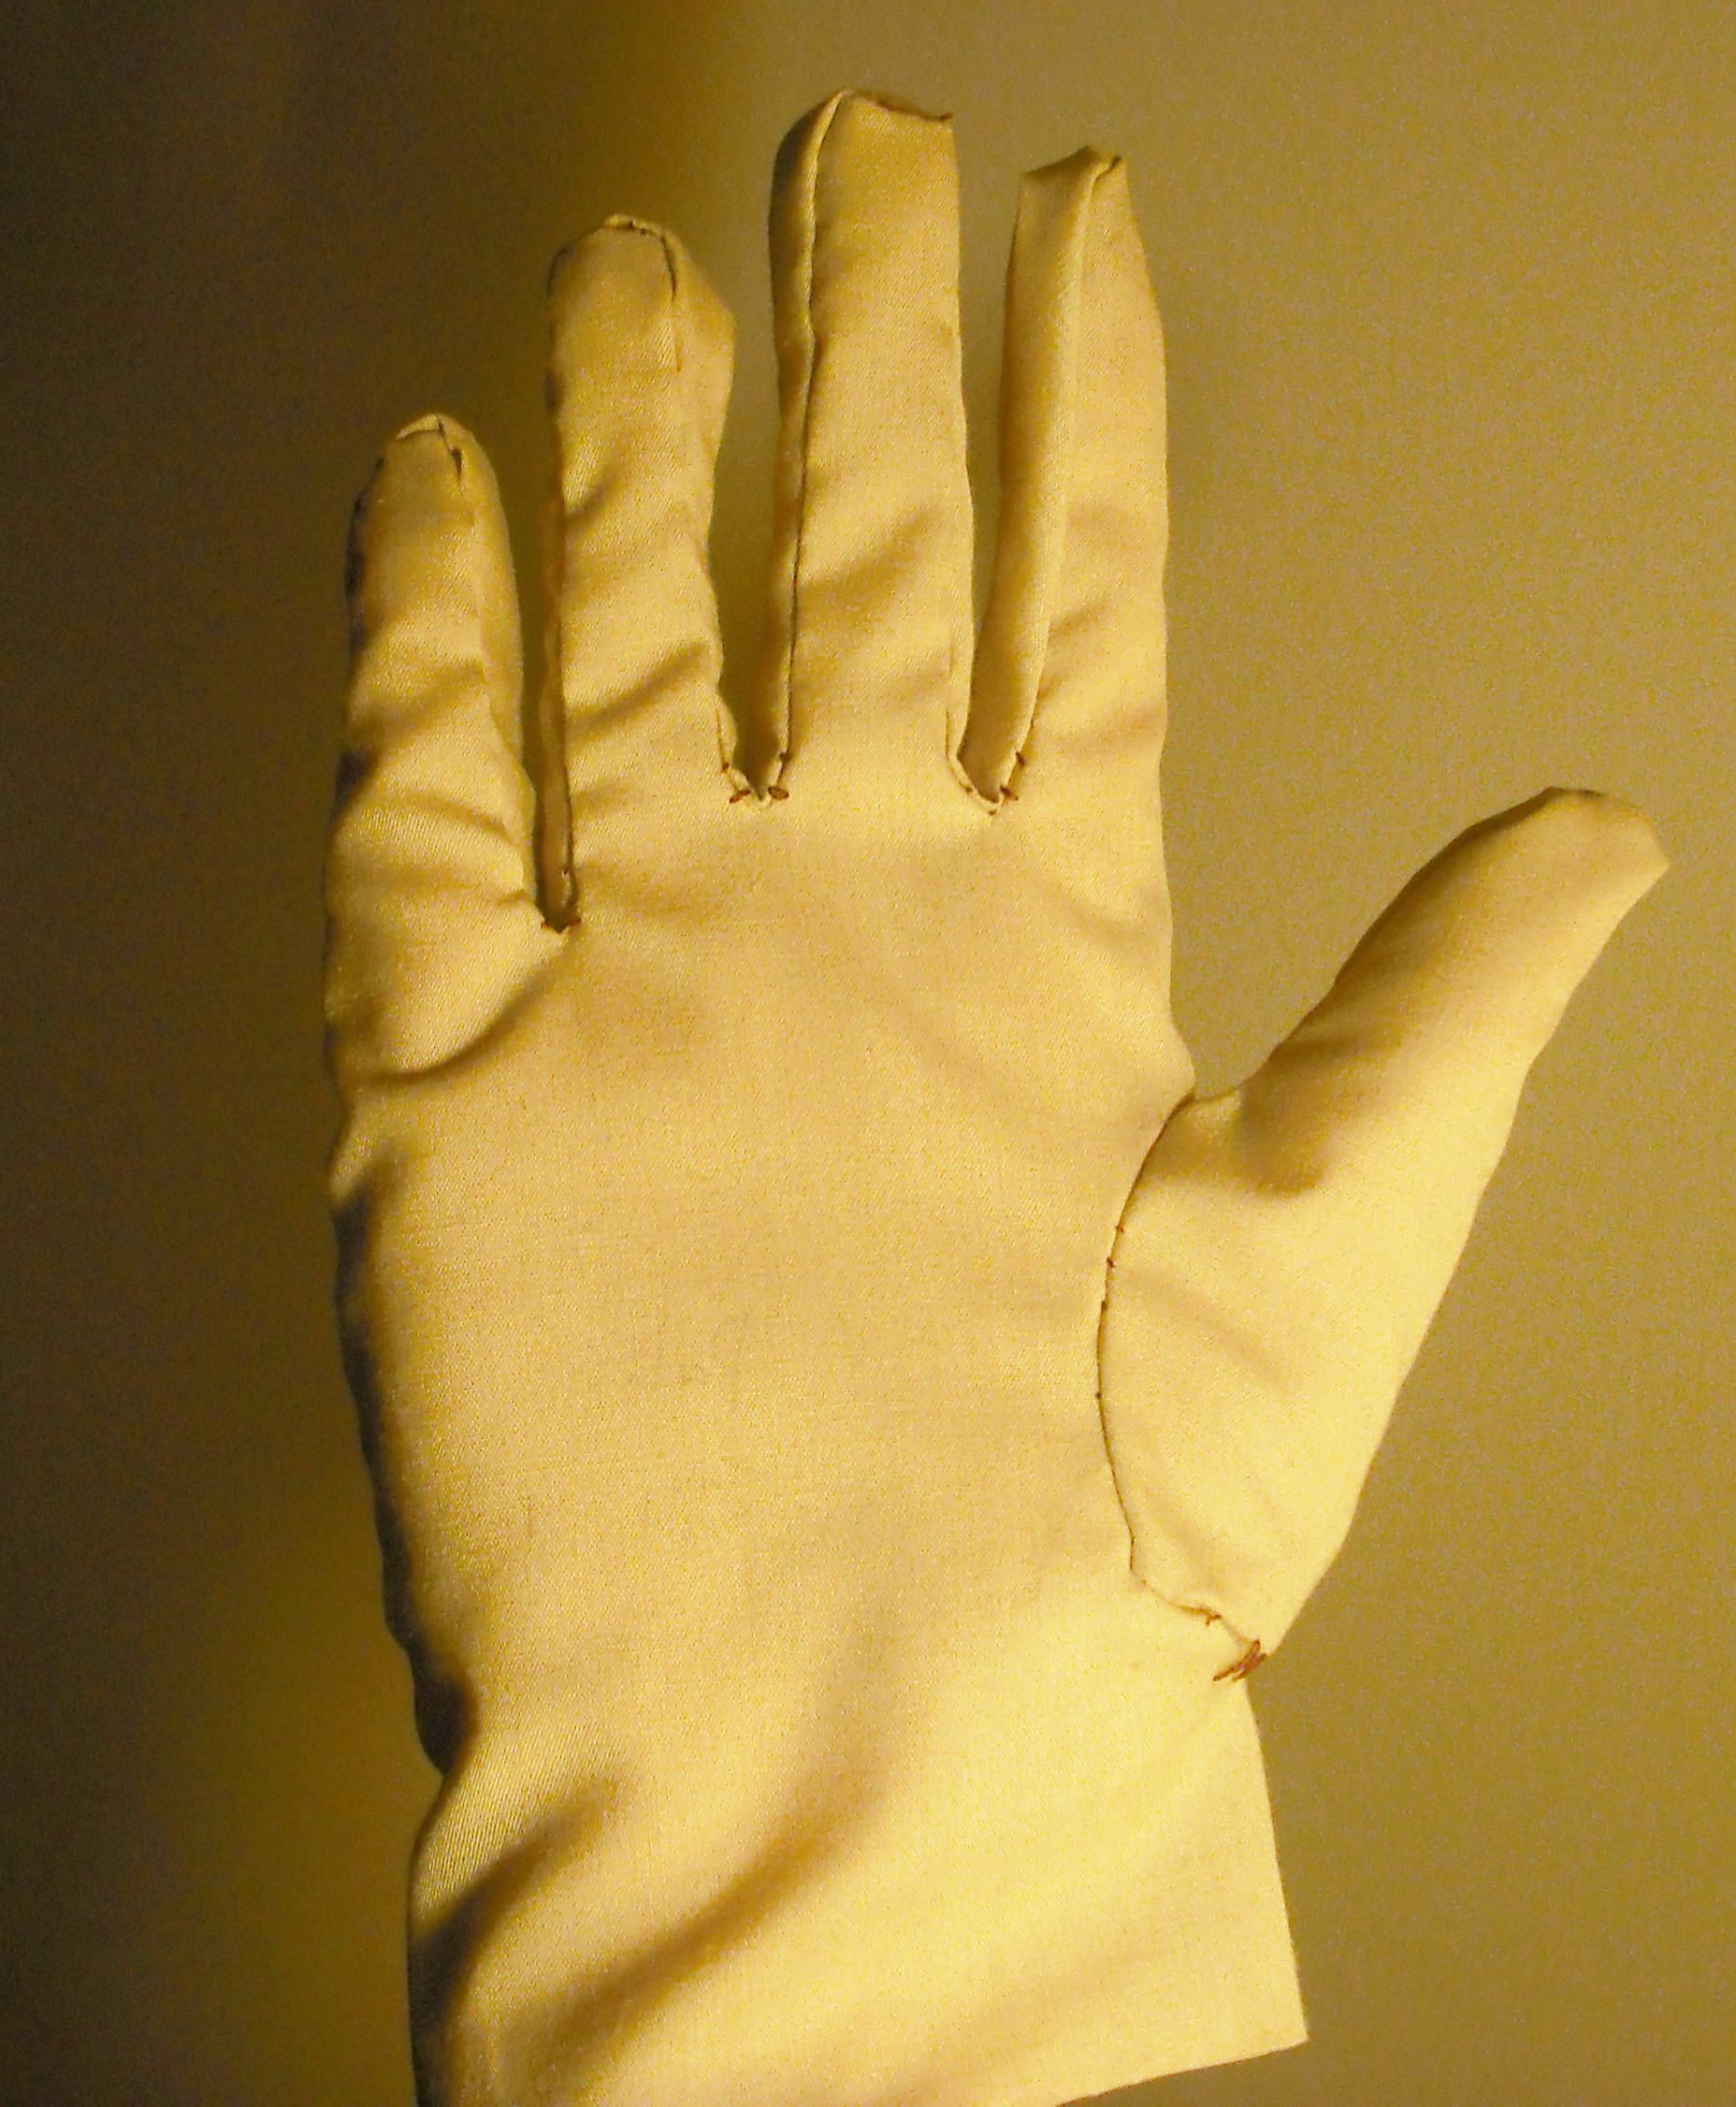 Driving gloves yahoo answers - Driving Gloves Yahoo Answers 57